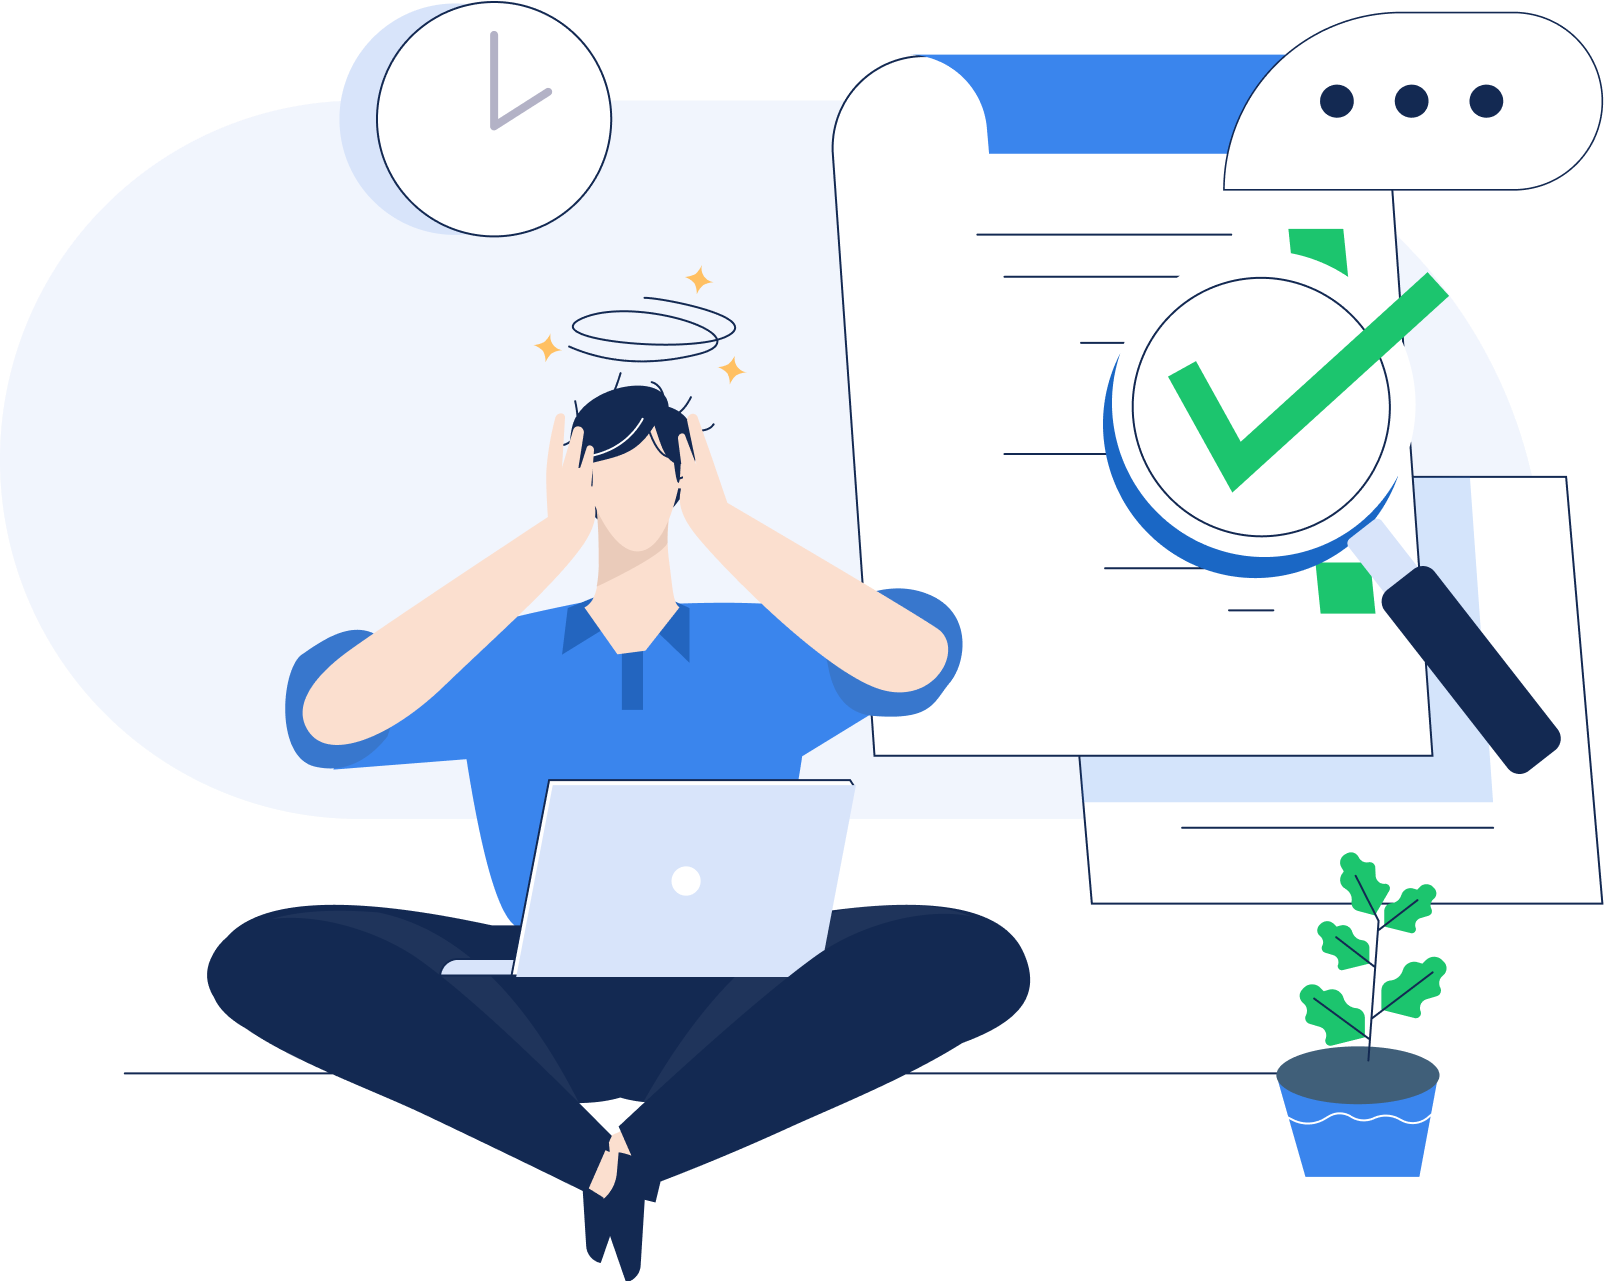 an illustration of a person sitting with a laptop. above is a clock and to the right is a to-do list.